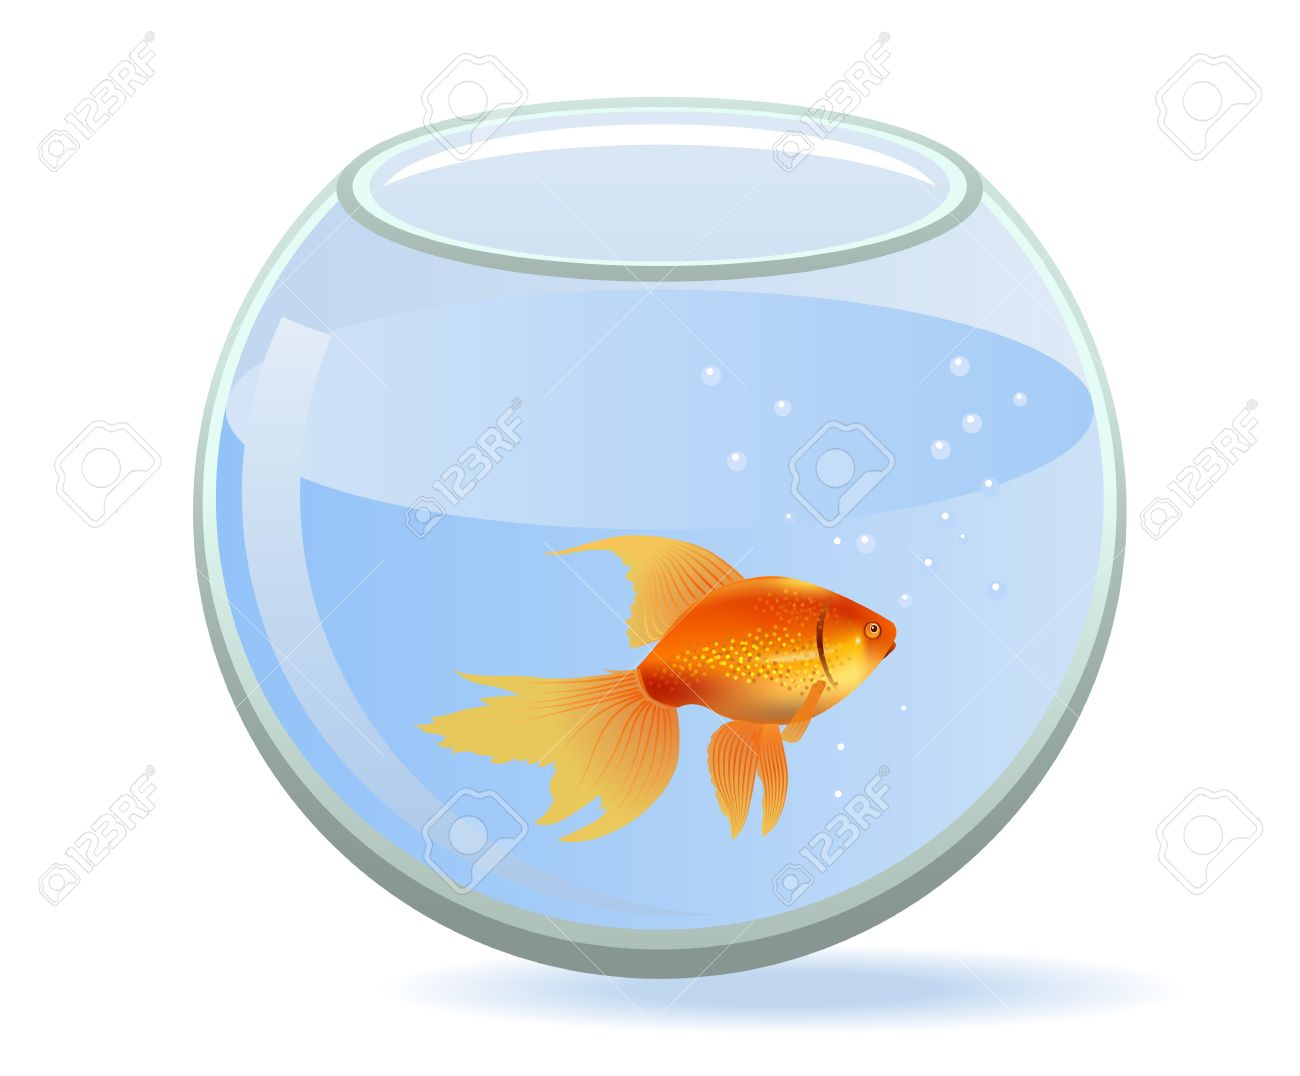 Goldfish bowl clipart clipground for Fish bowl pictures